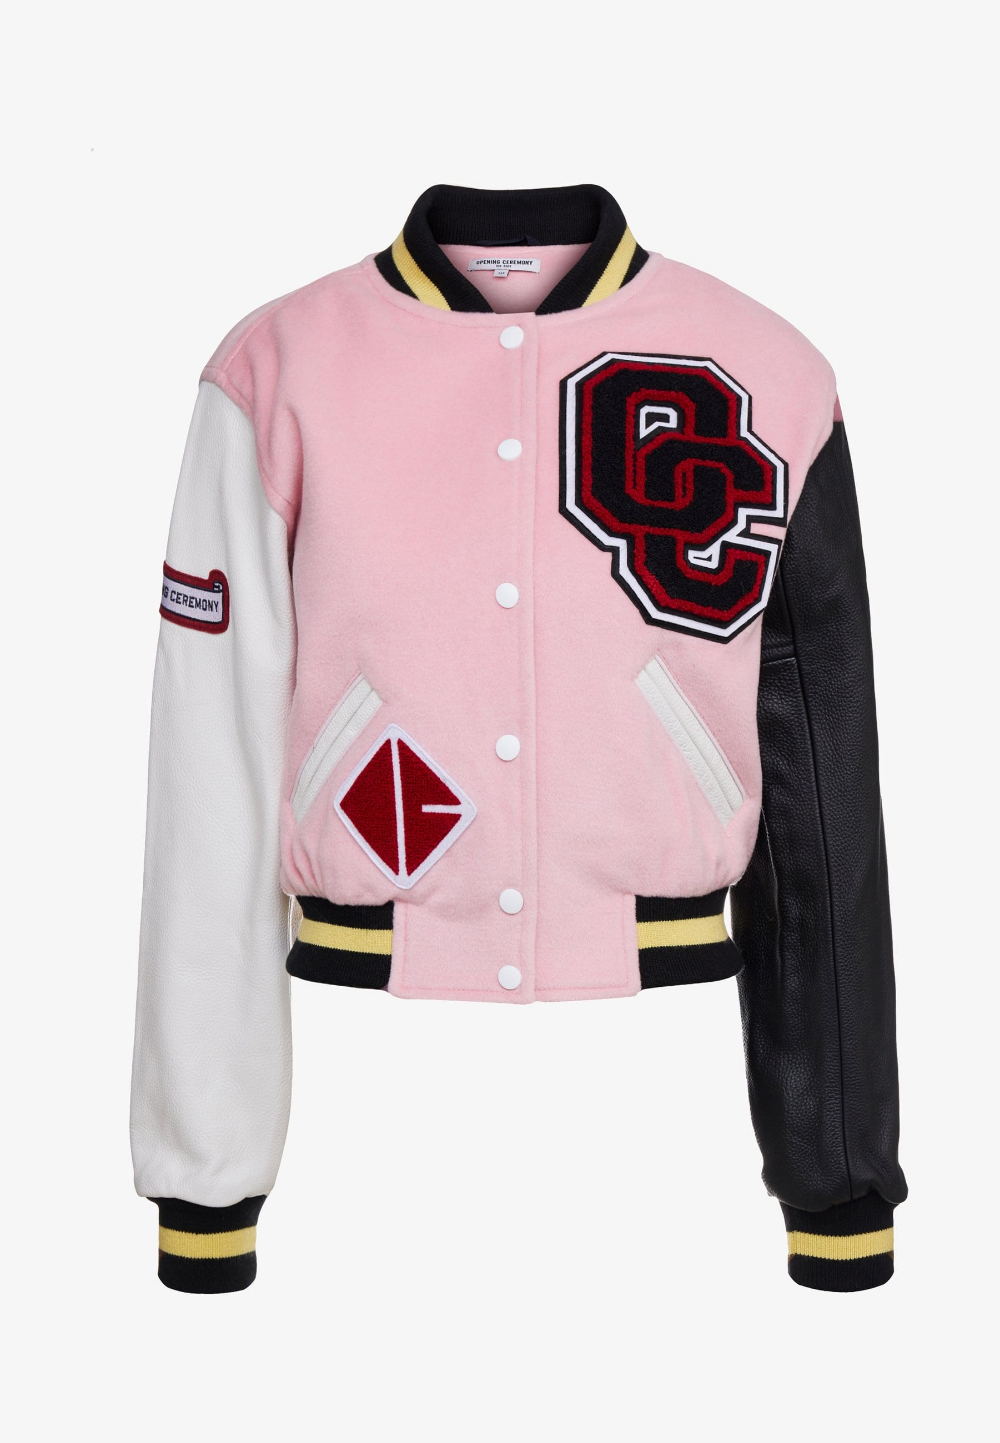 SHRUNKEN VARSITY JACKET Leather jacket pink salt